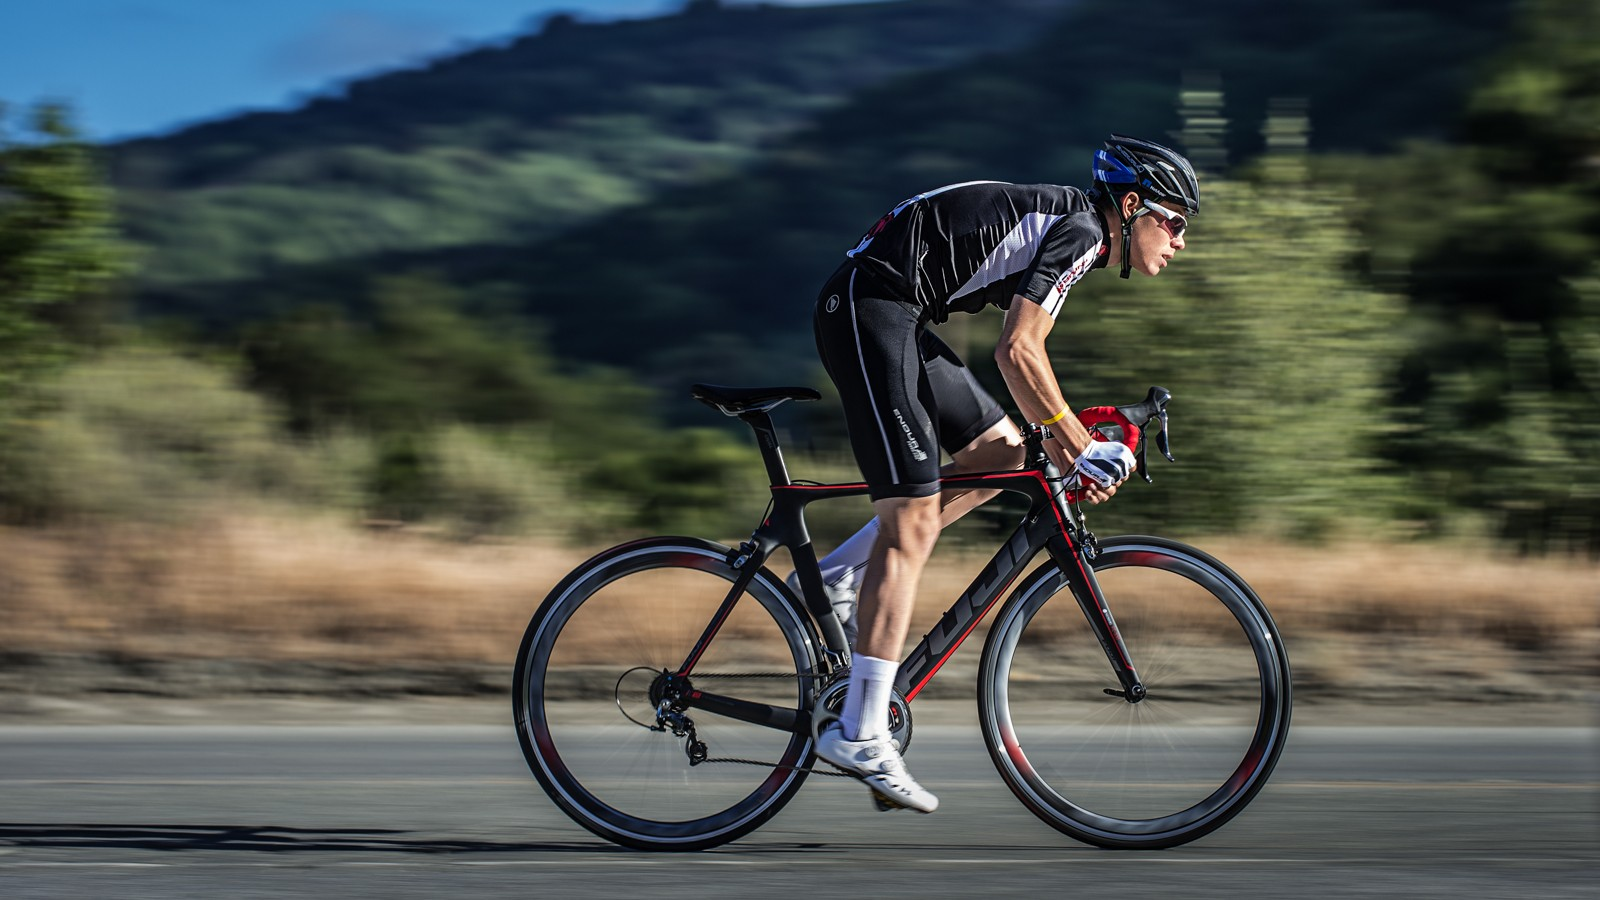 Road bikes are your fastest option, but bad weather and thieves will be against you